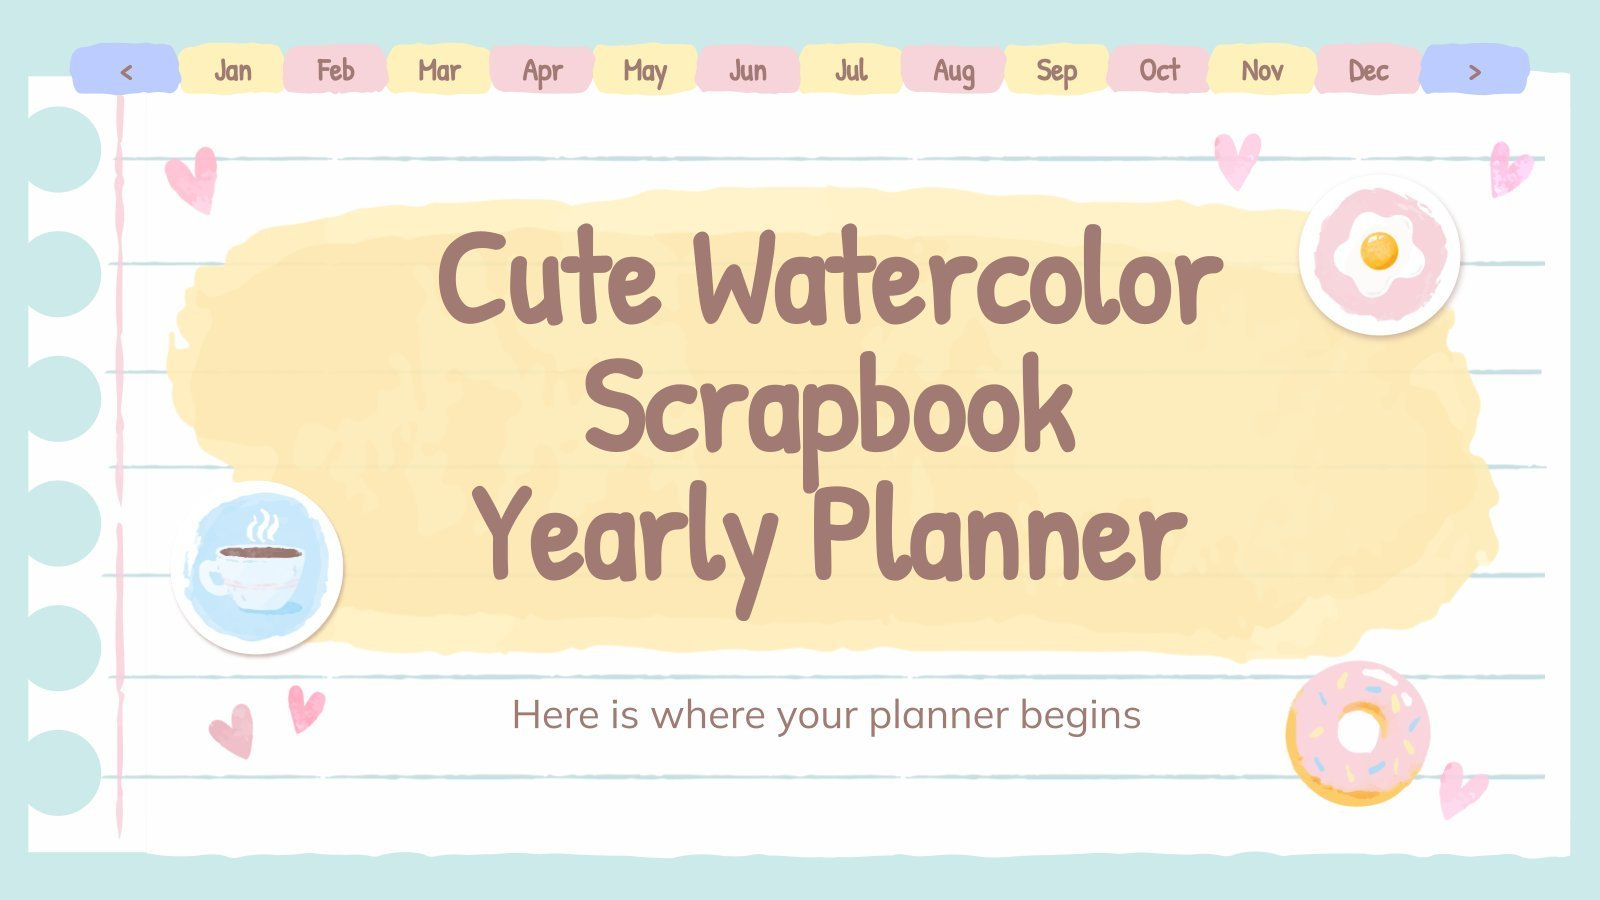 Cute Watercolor Scrapbook Yearly Planner presentation template